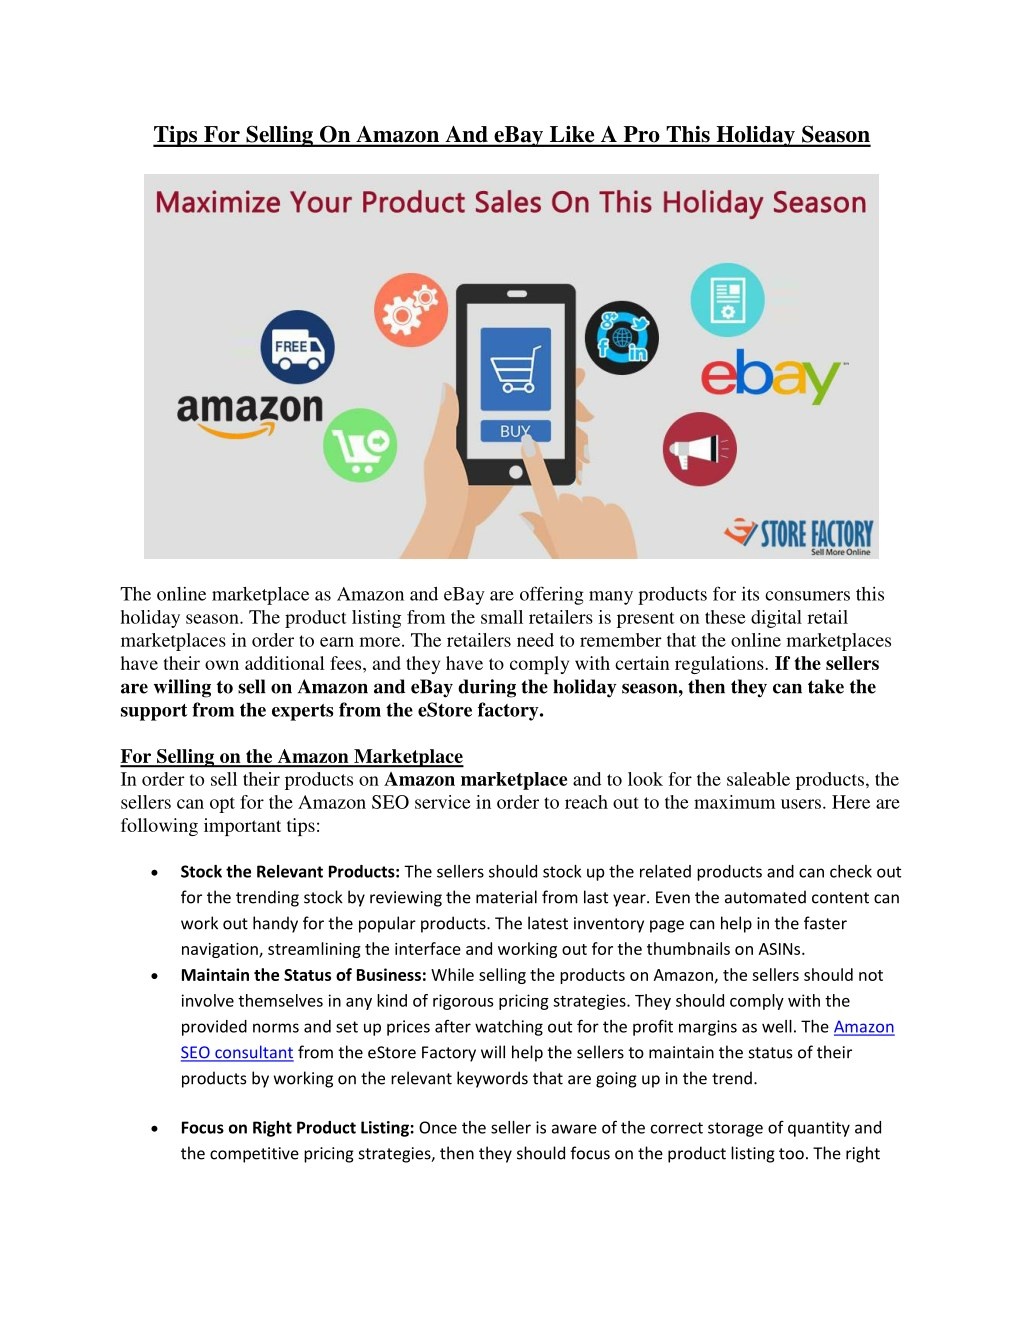 Ppt Tips For Selling On Amazon And Ebay Like A Pro This Holiday Season Powerpoint Presentation Id 7743560